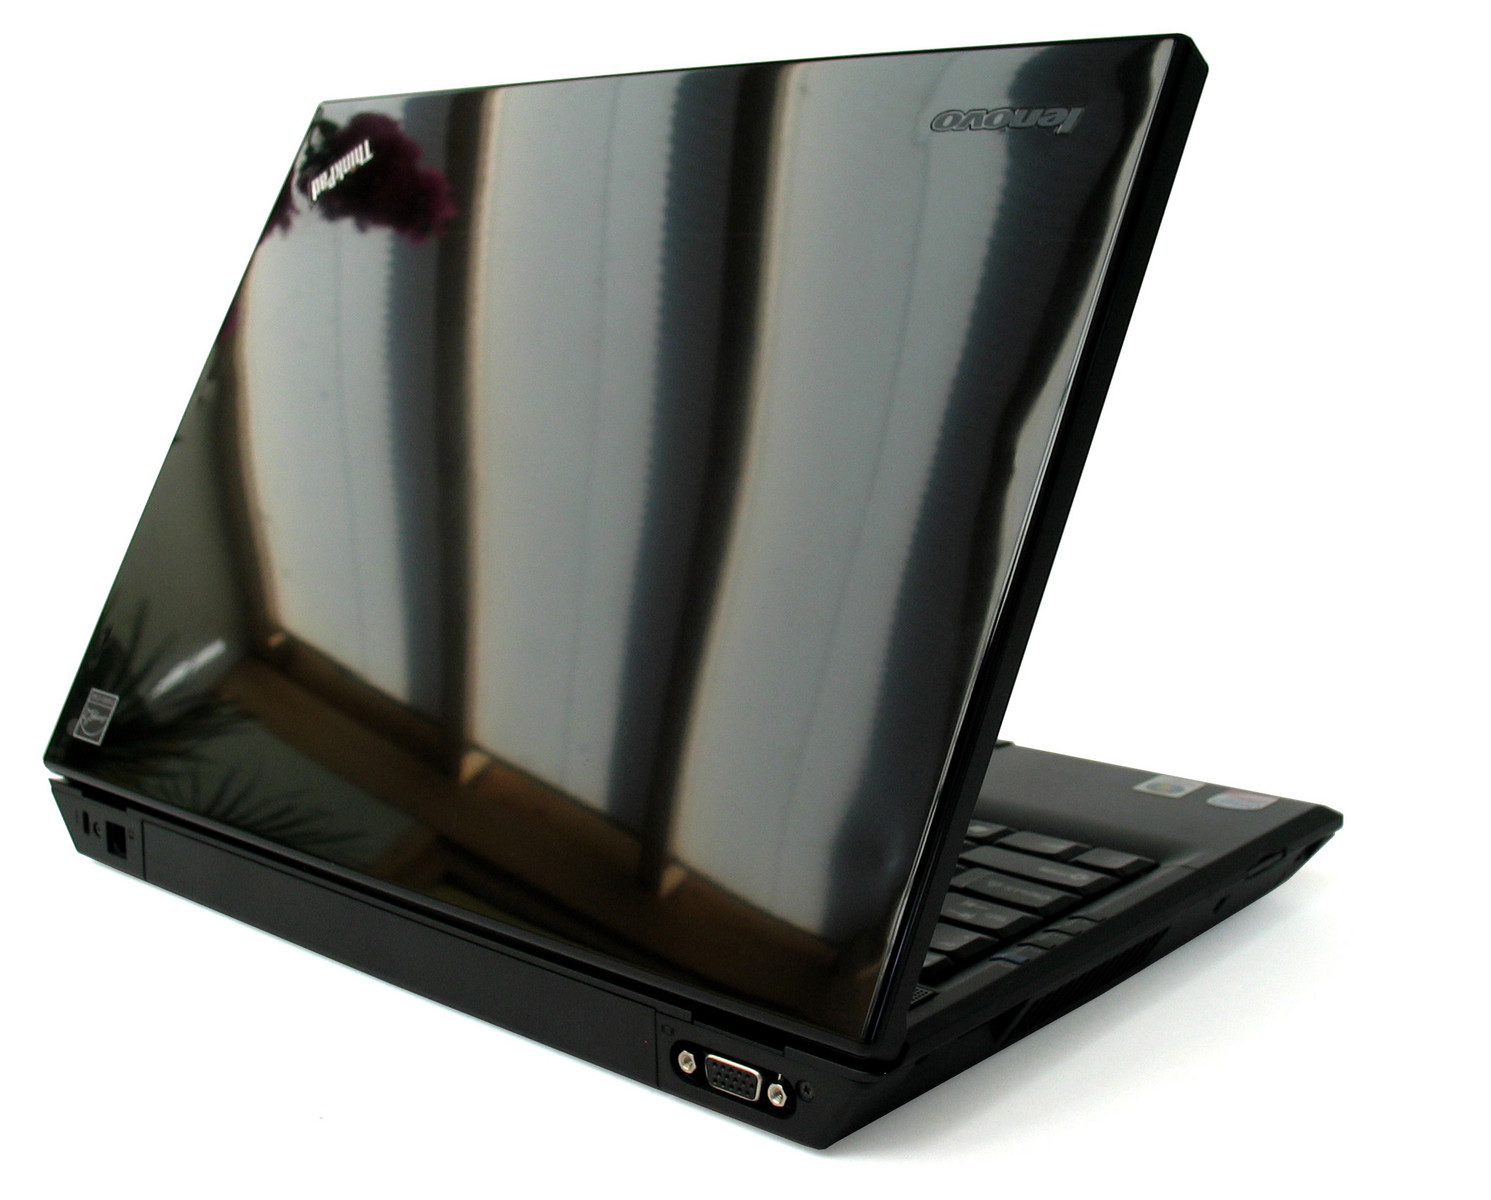 LENOVO THINKPAD SL300 ALPS ULTRANAV DESCARGAR DRIVER